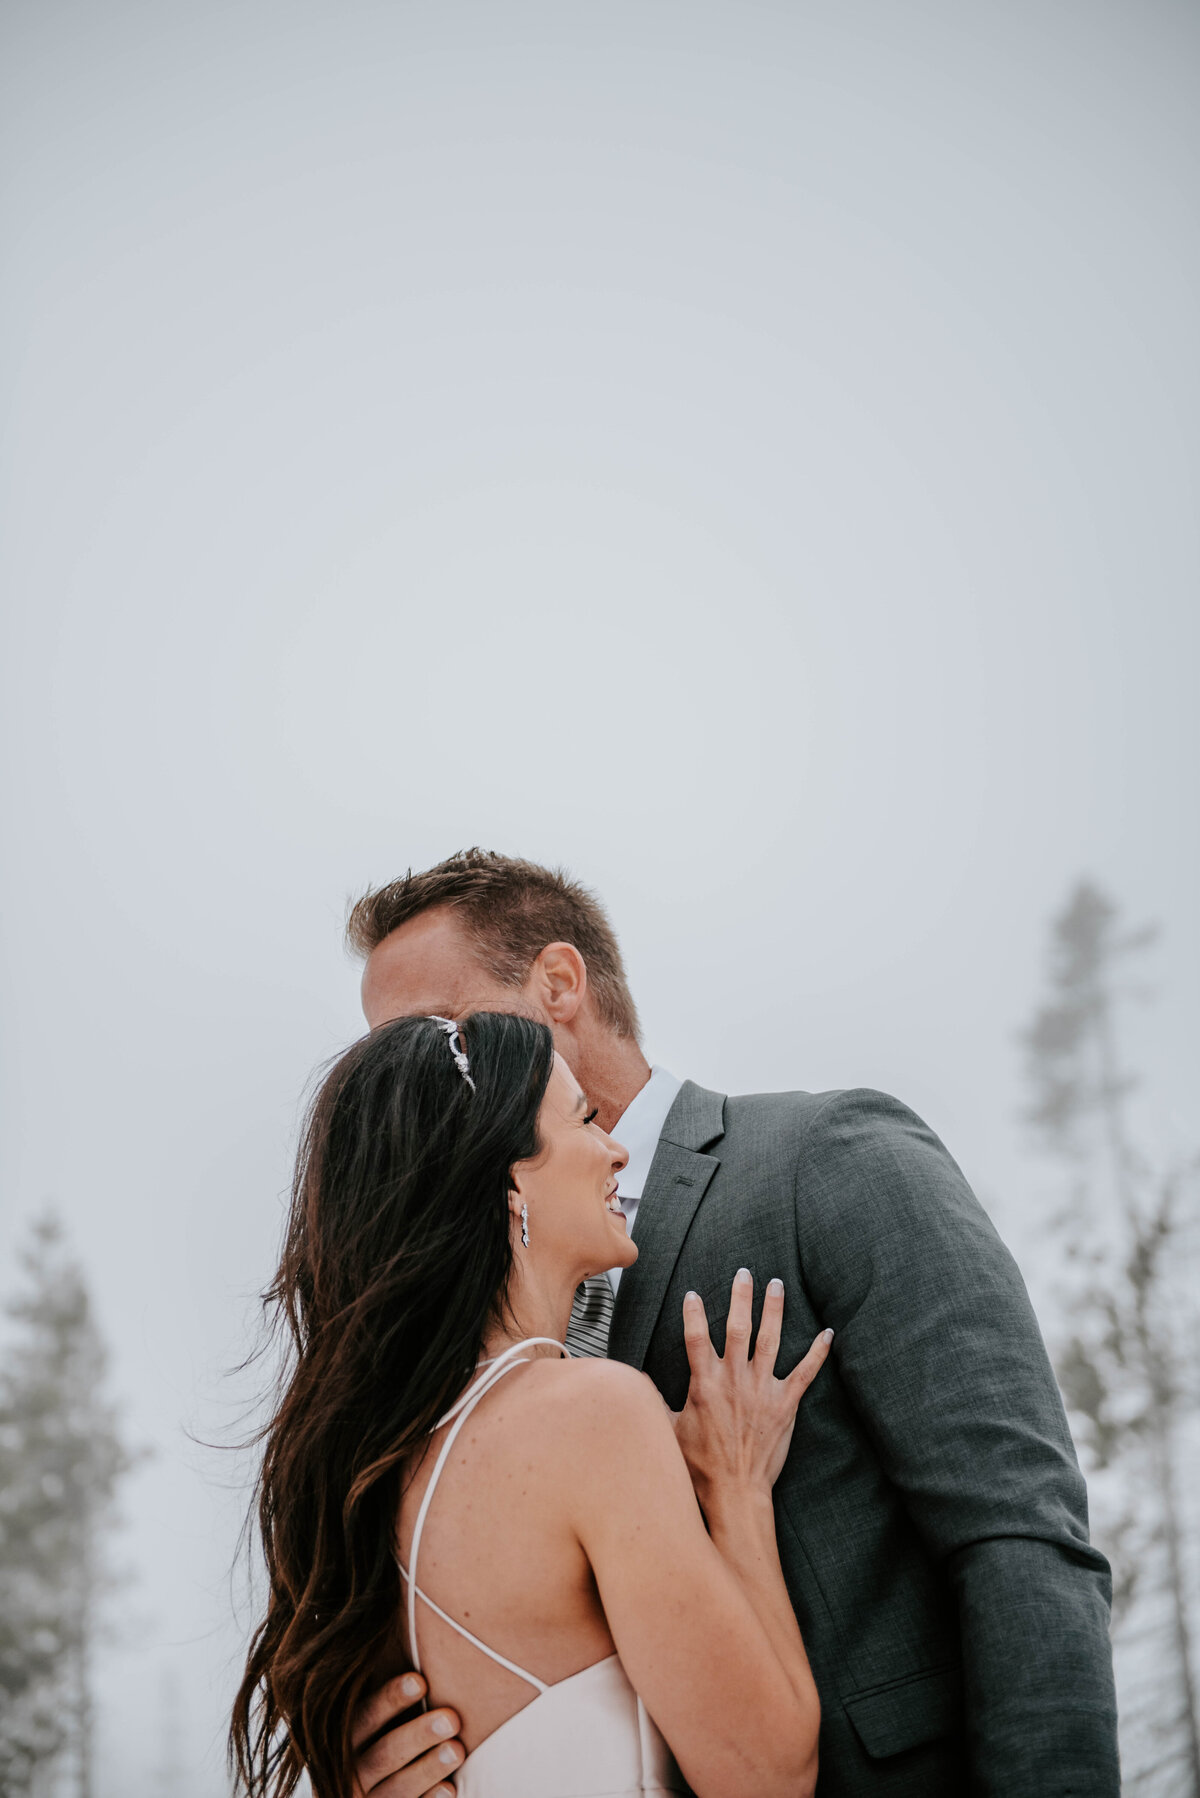 mt-bachelor-snow-winter-elopement-bend-oregon-wedding-photographer-2355